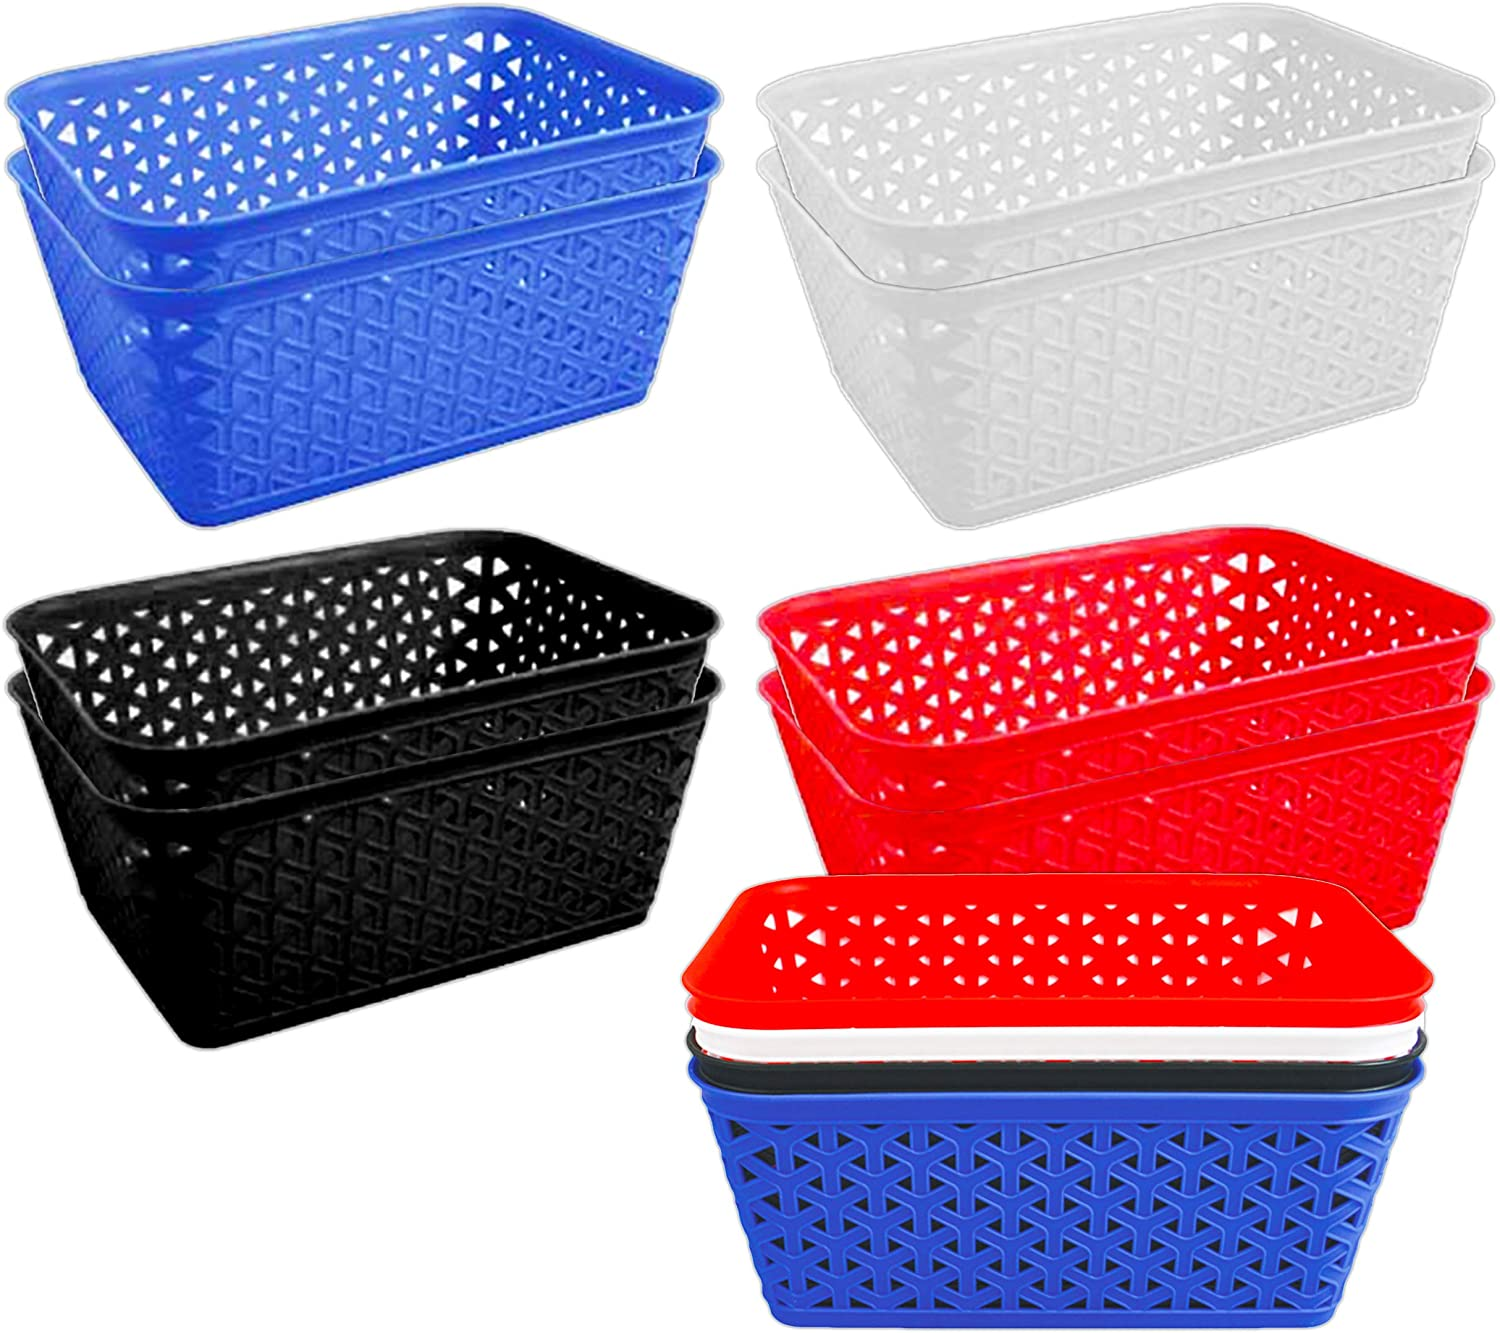 Graydon Hall Plastic Storage Baskets for Shelves, Food, Bathrooms, and More ~ 8 Pack Rectangular Storage Baskets (Food Basket Rectangle Assorted Colors)